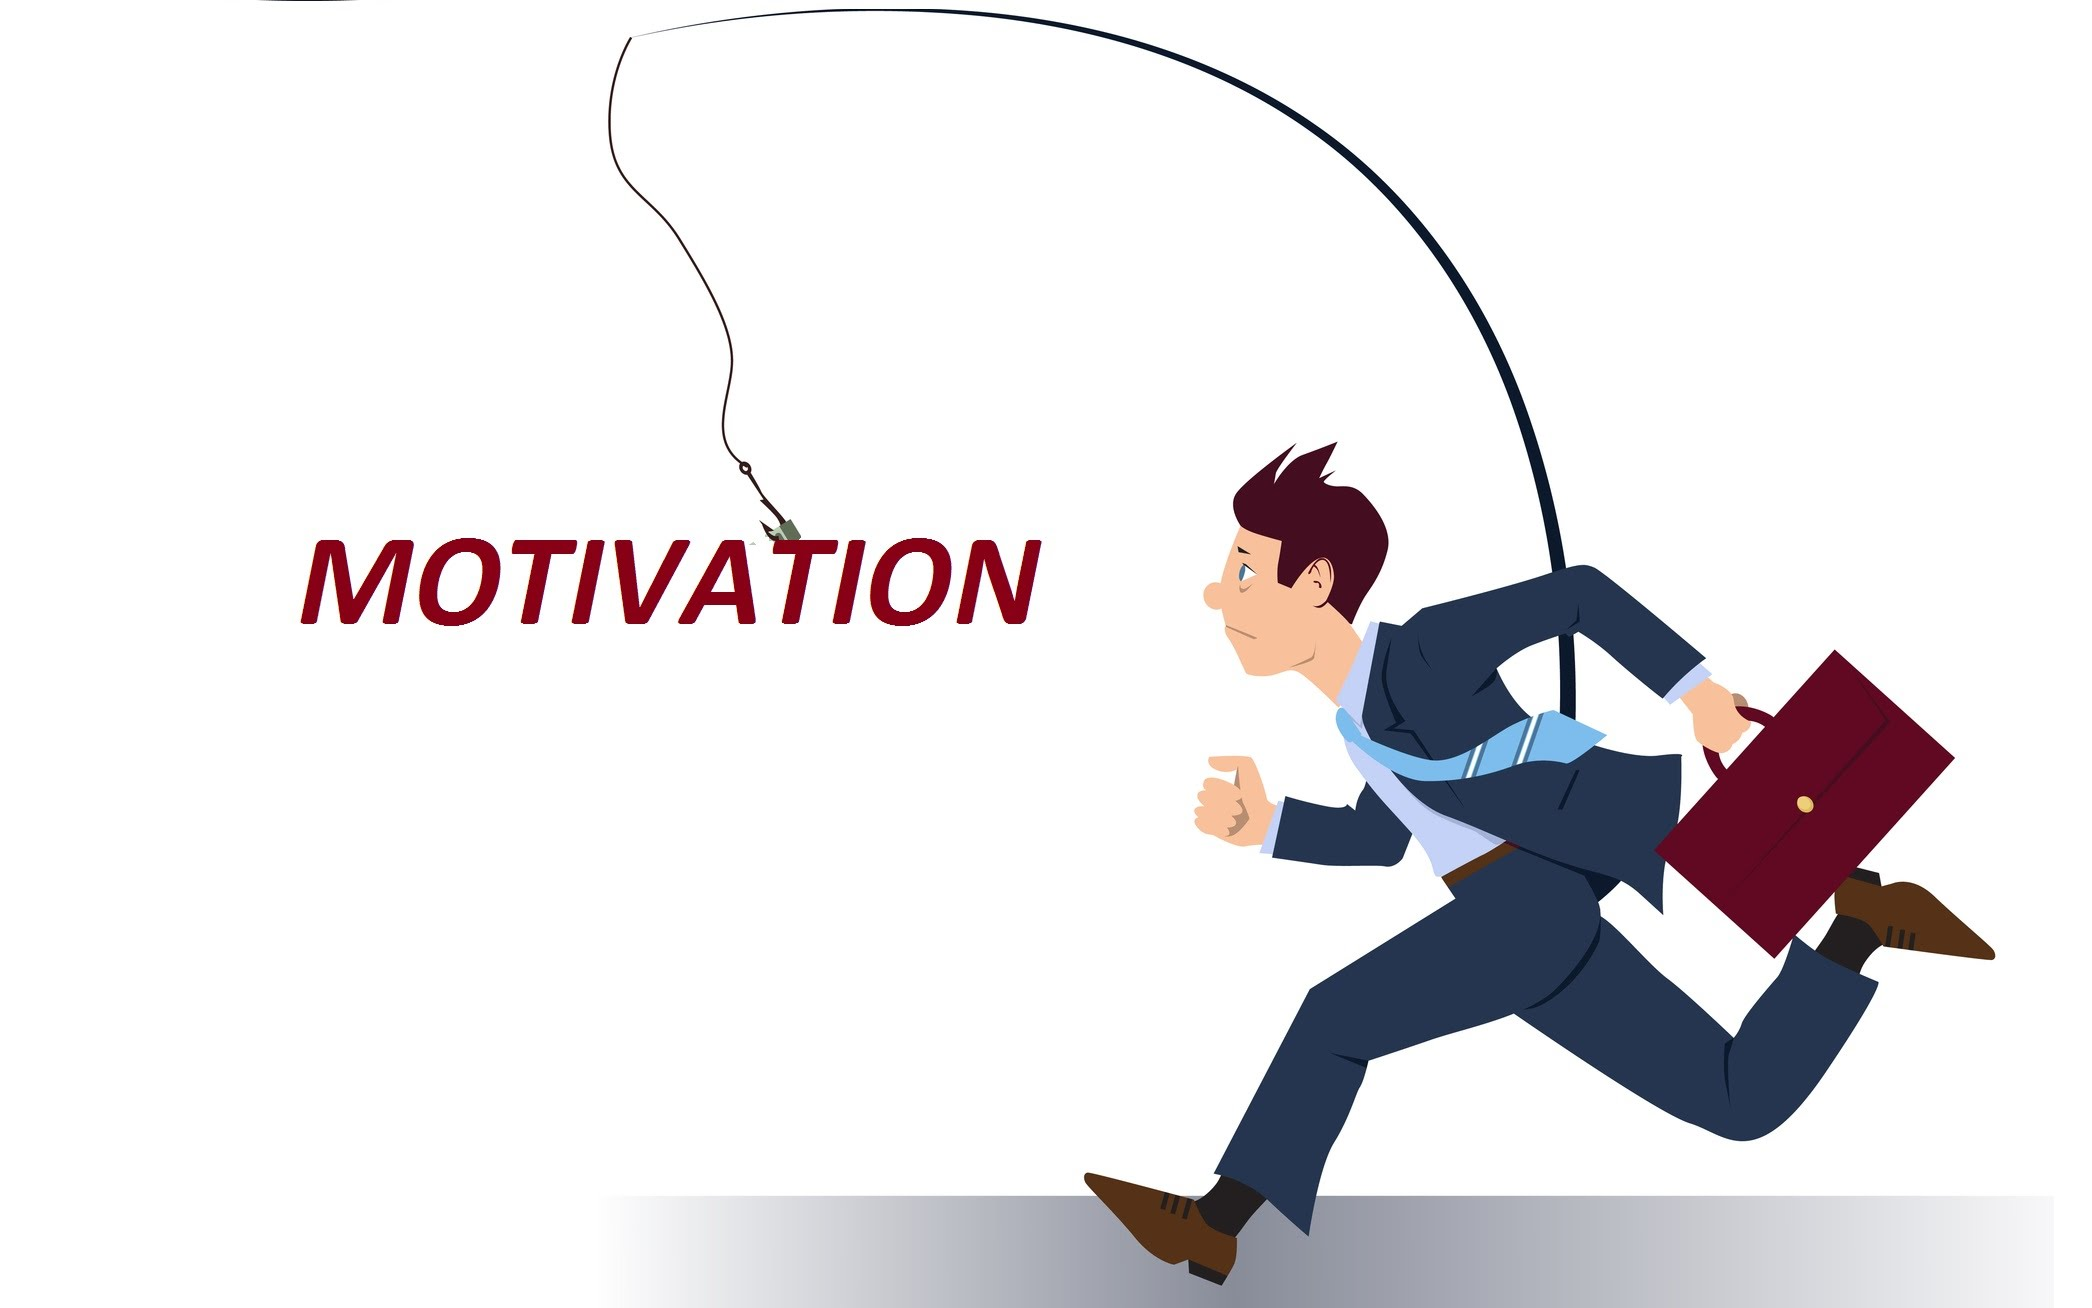 Employee Motivation - 10 Tips To Boost Job Performance